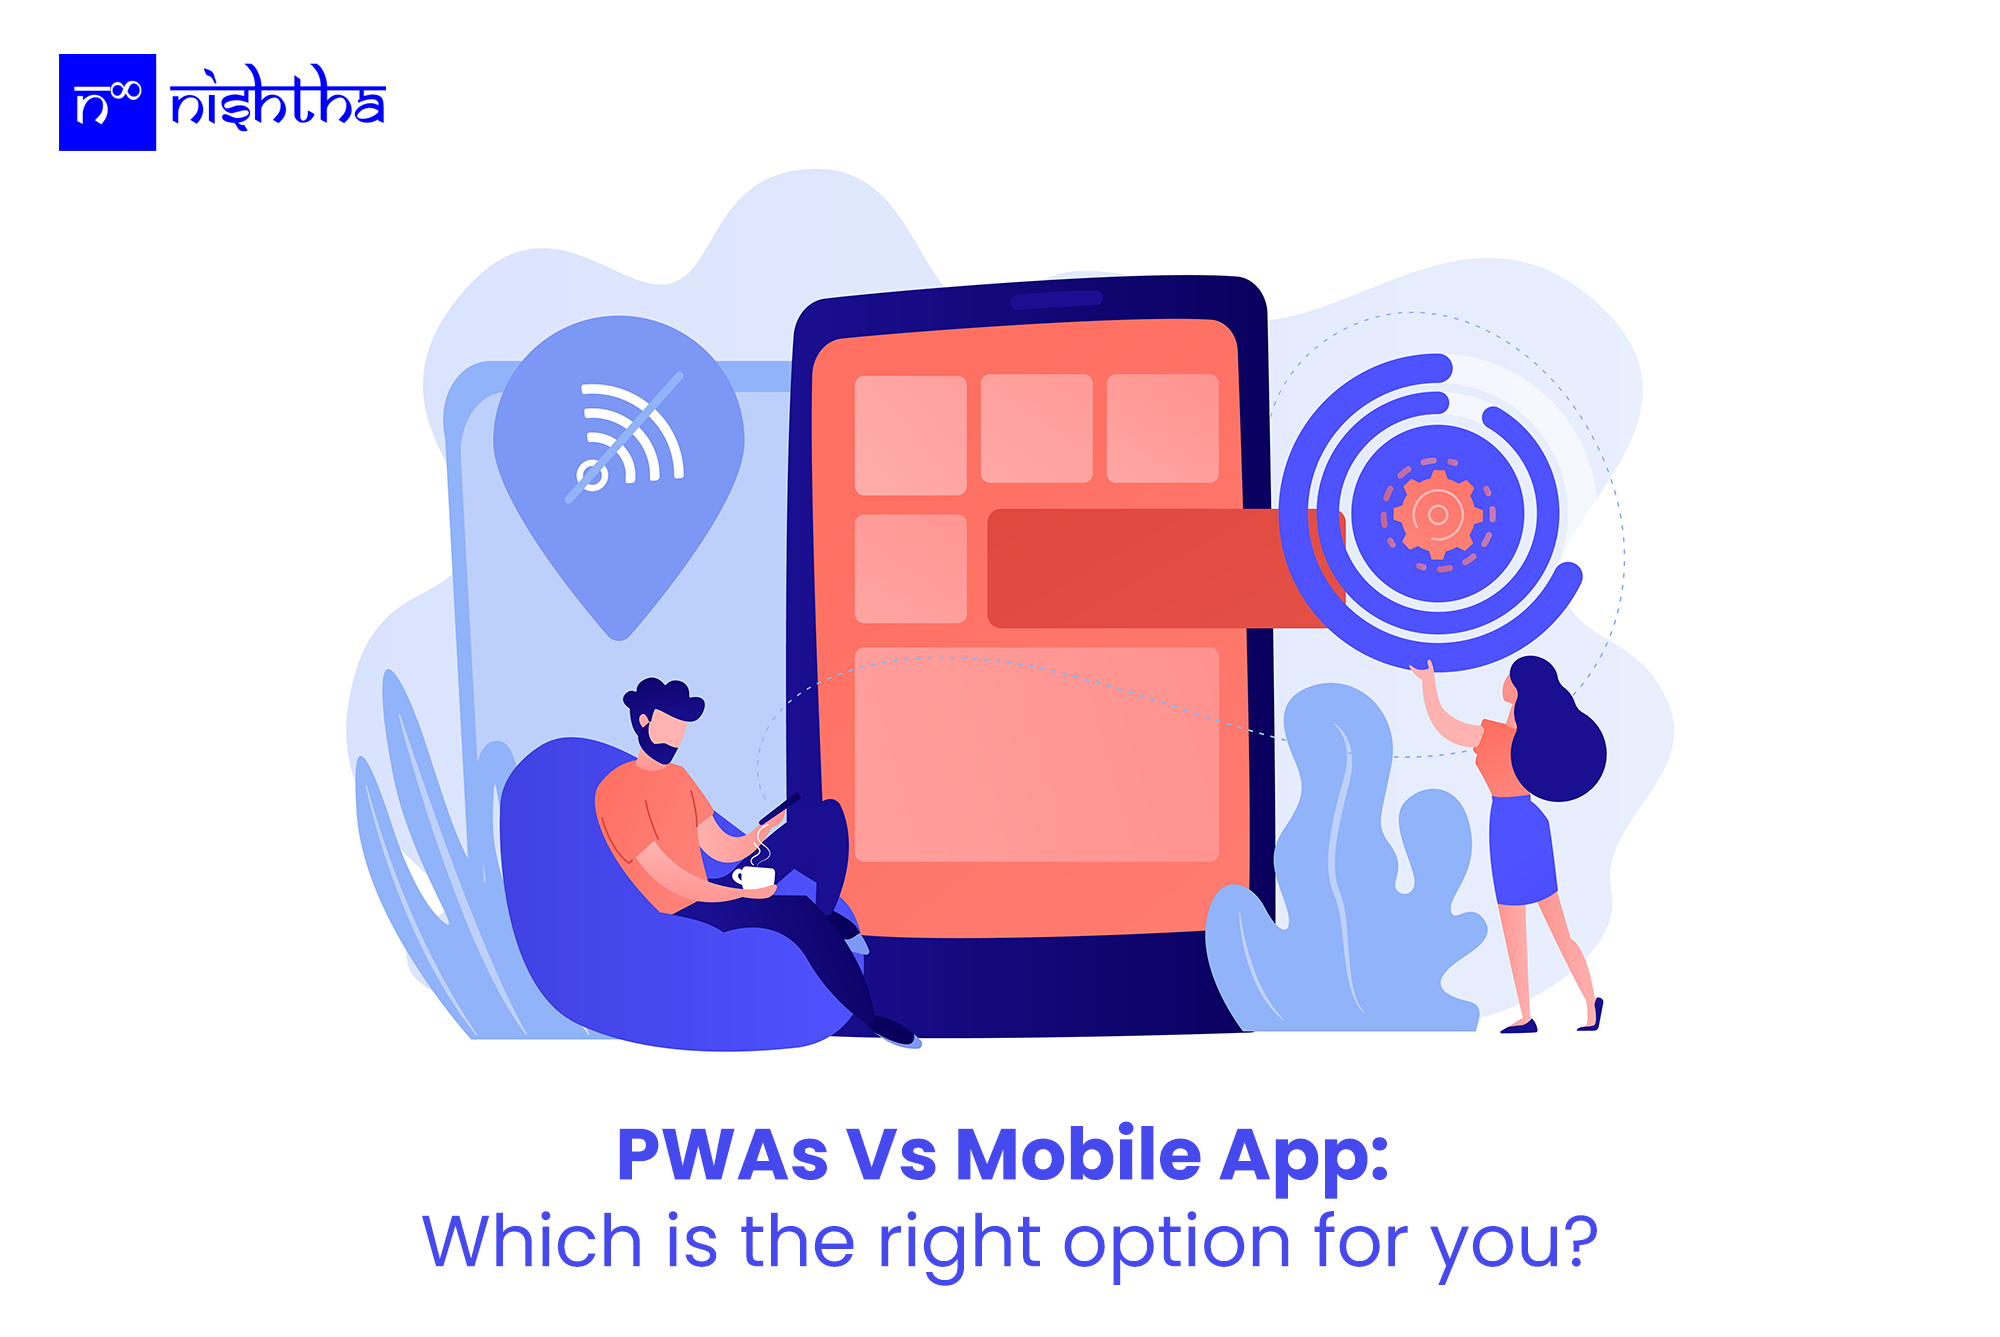 PWAs Vs Mobile App: Which is the right option for you?